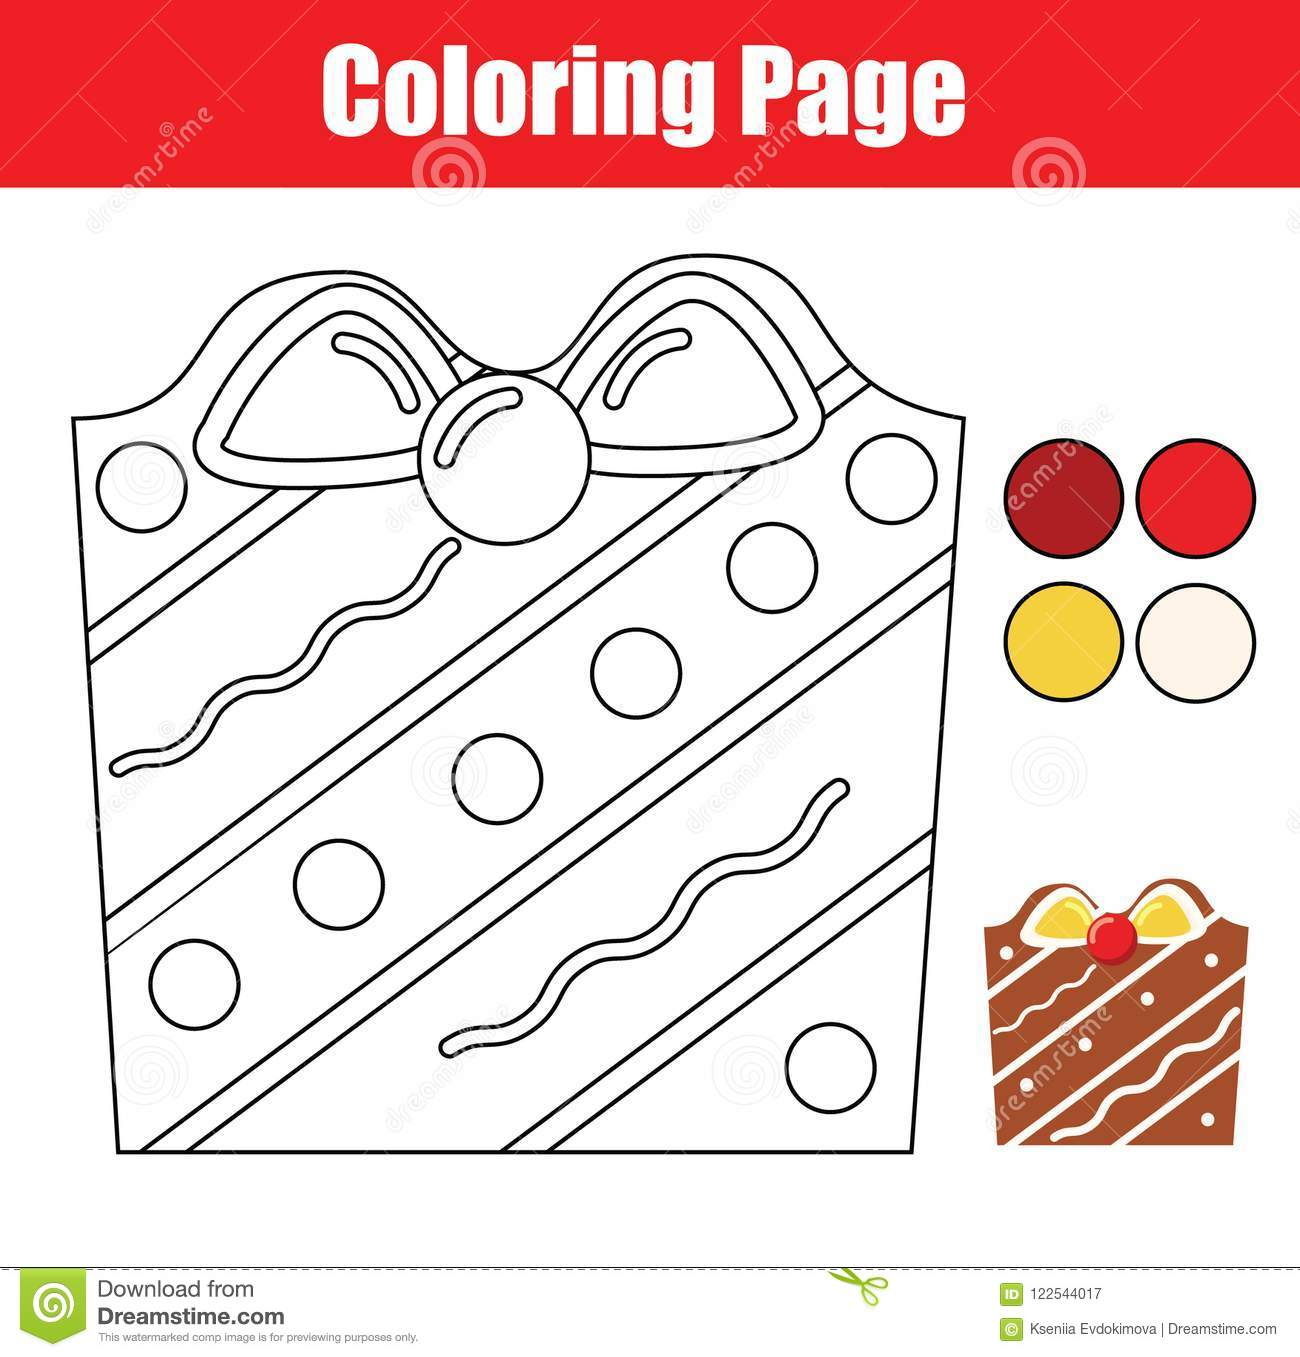 Coloring Page. Educational Children Game. Color Christmas Cookie ...